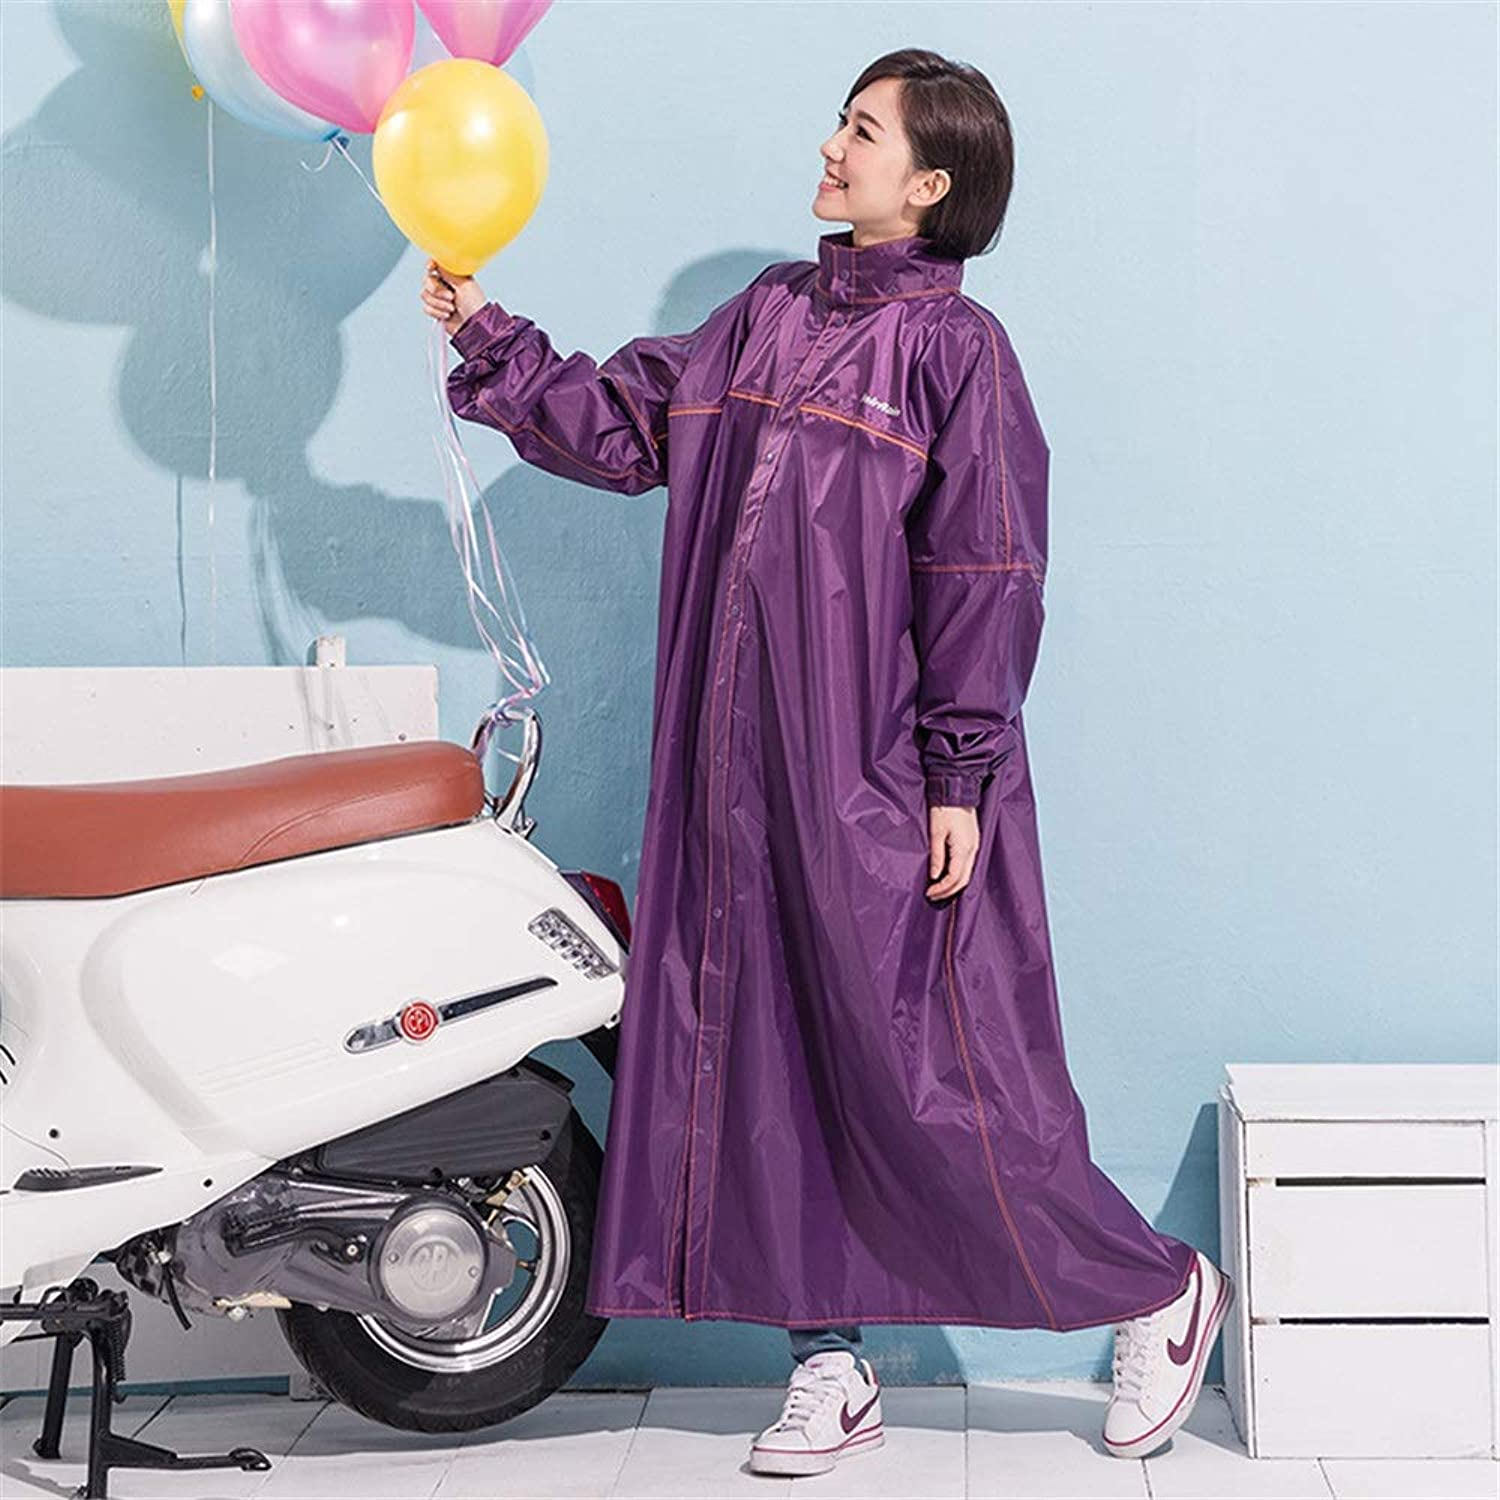 LJGG Raincoat Long Loose Adult Poncho Long Section Windbreaker Male and Female Ride with Sleeve Raincoat (color   Purple, Size   L)